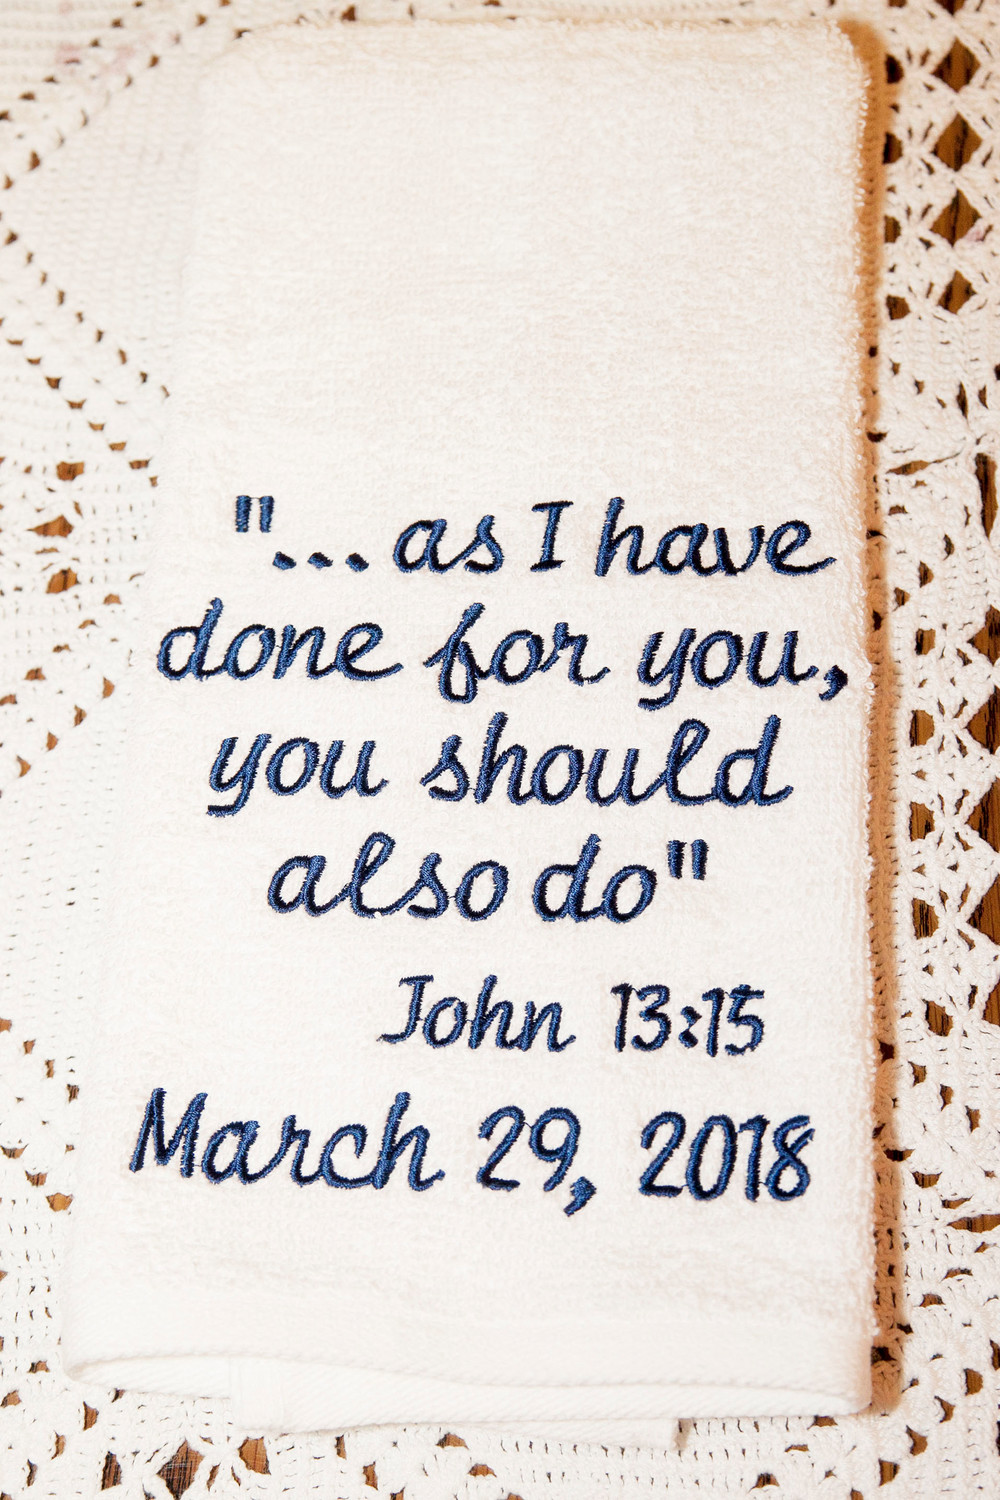 Each of the faithful whose feet were washed during the Holy Thursday liturgy at St. Denis was given a towel inscribed with a Scripture verse from the Gospel of John.